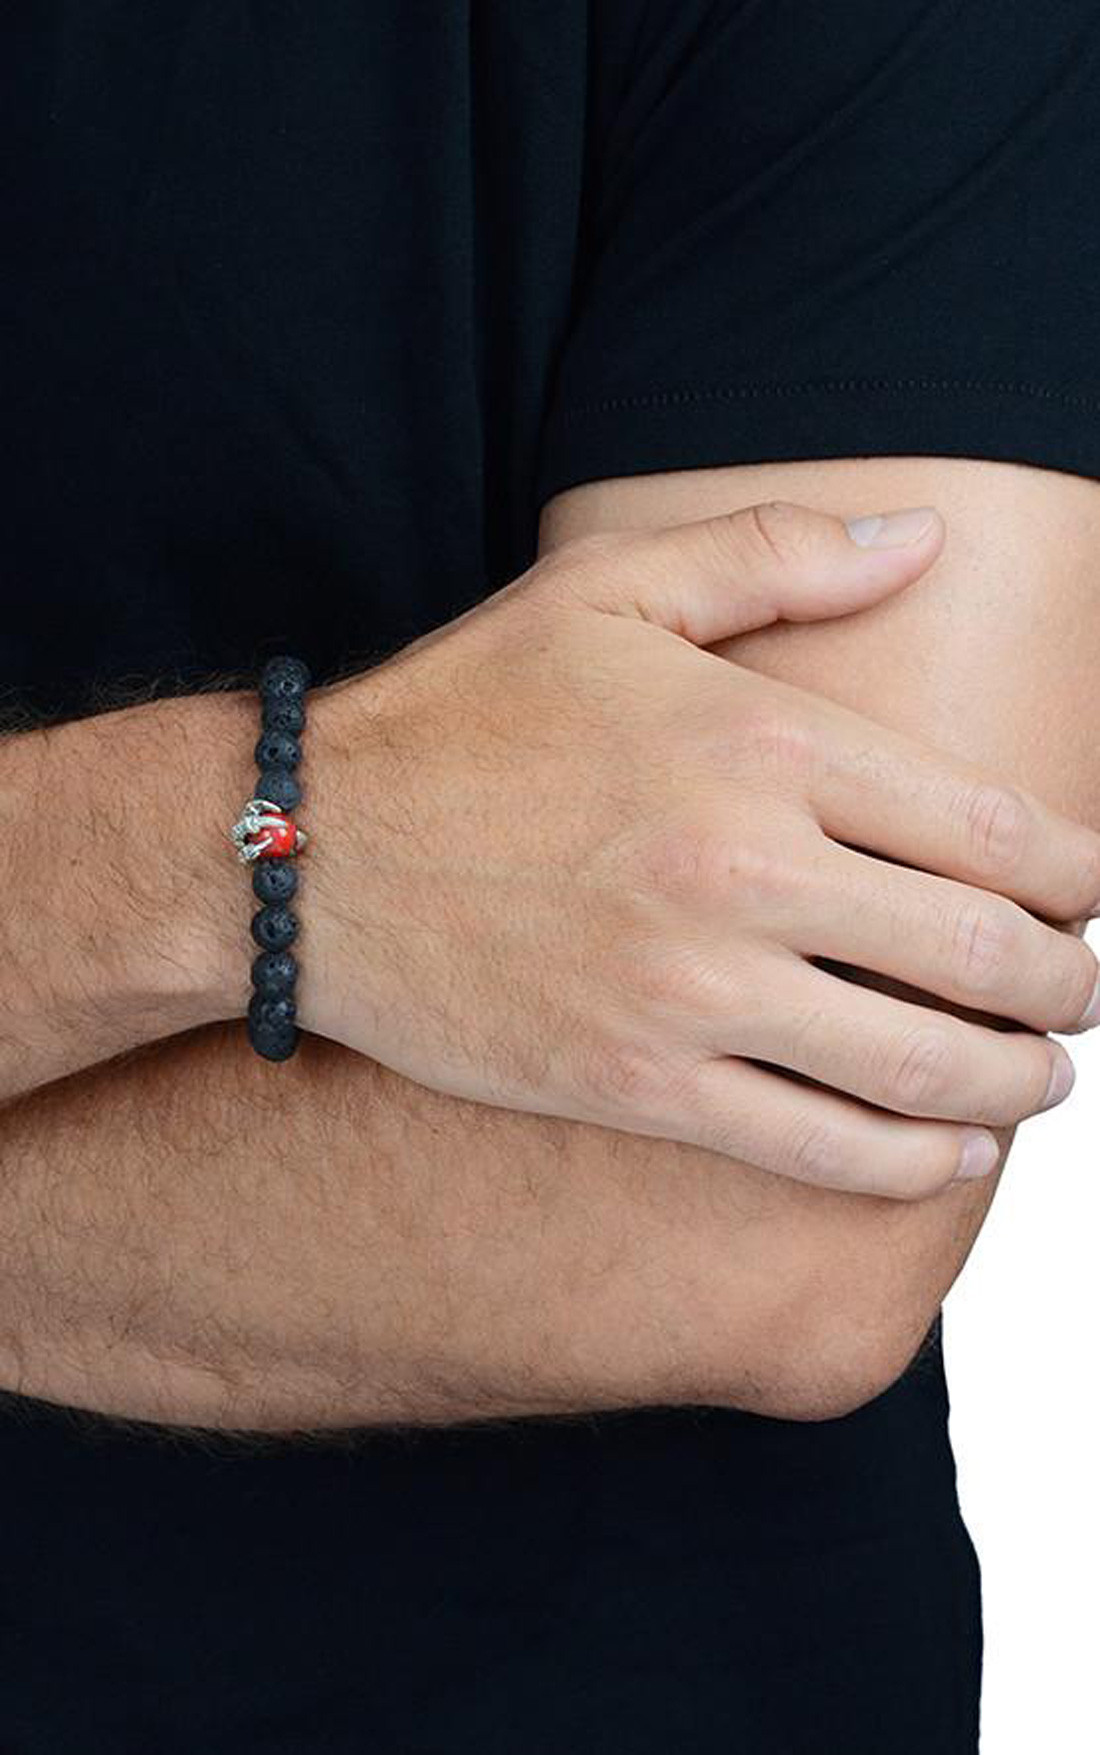 King Baby - Lava Rock Bracelet with Raven Claw Red Coral Bead (K40-5808)